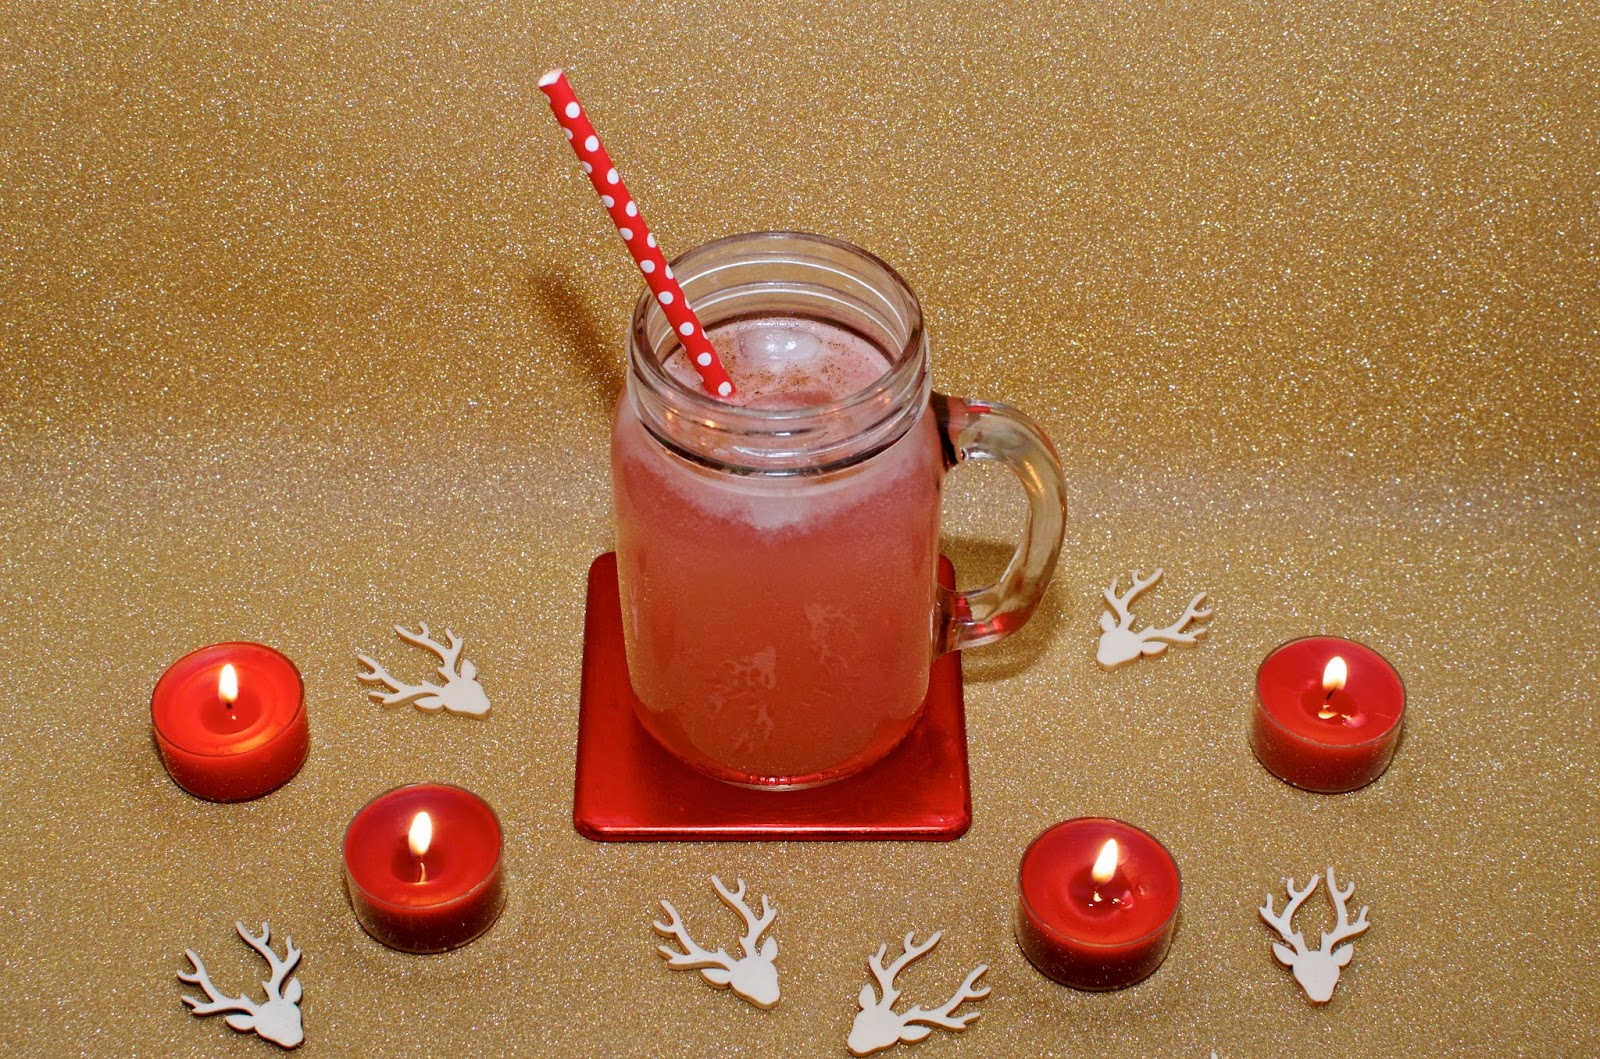 pink cocktail, red polka dot straw, red candles and reindeer confetti